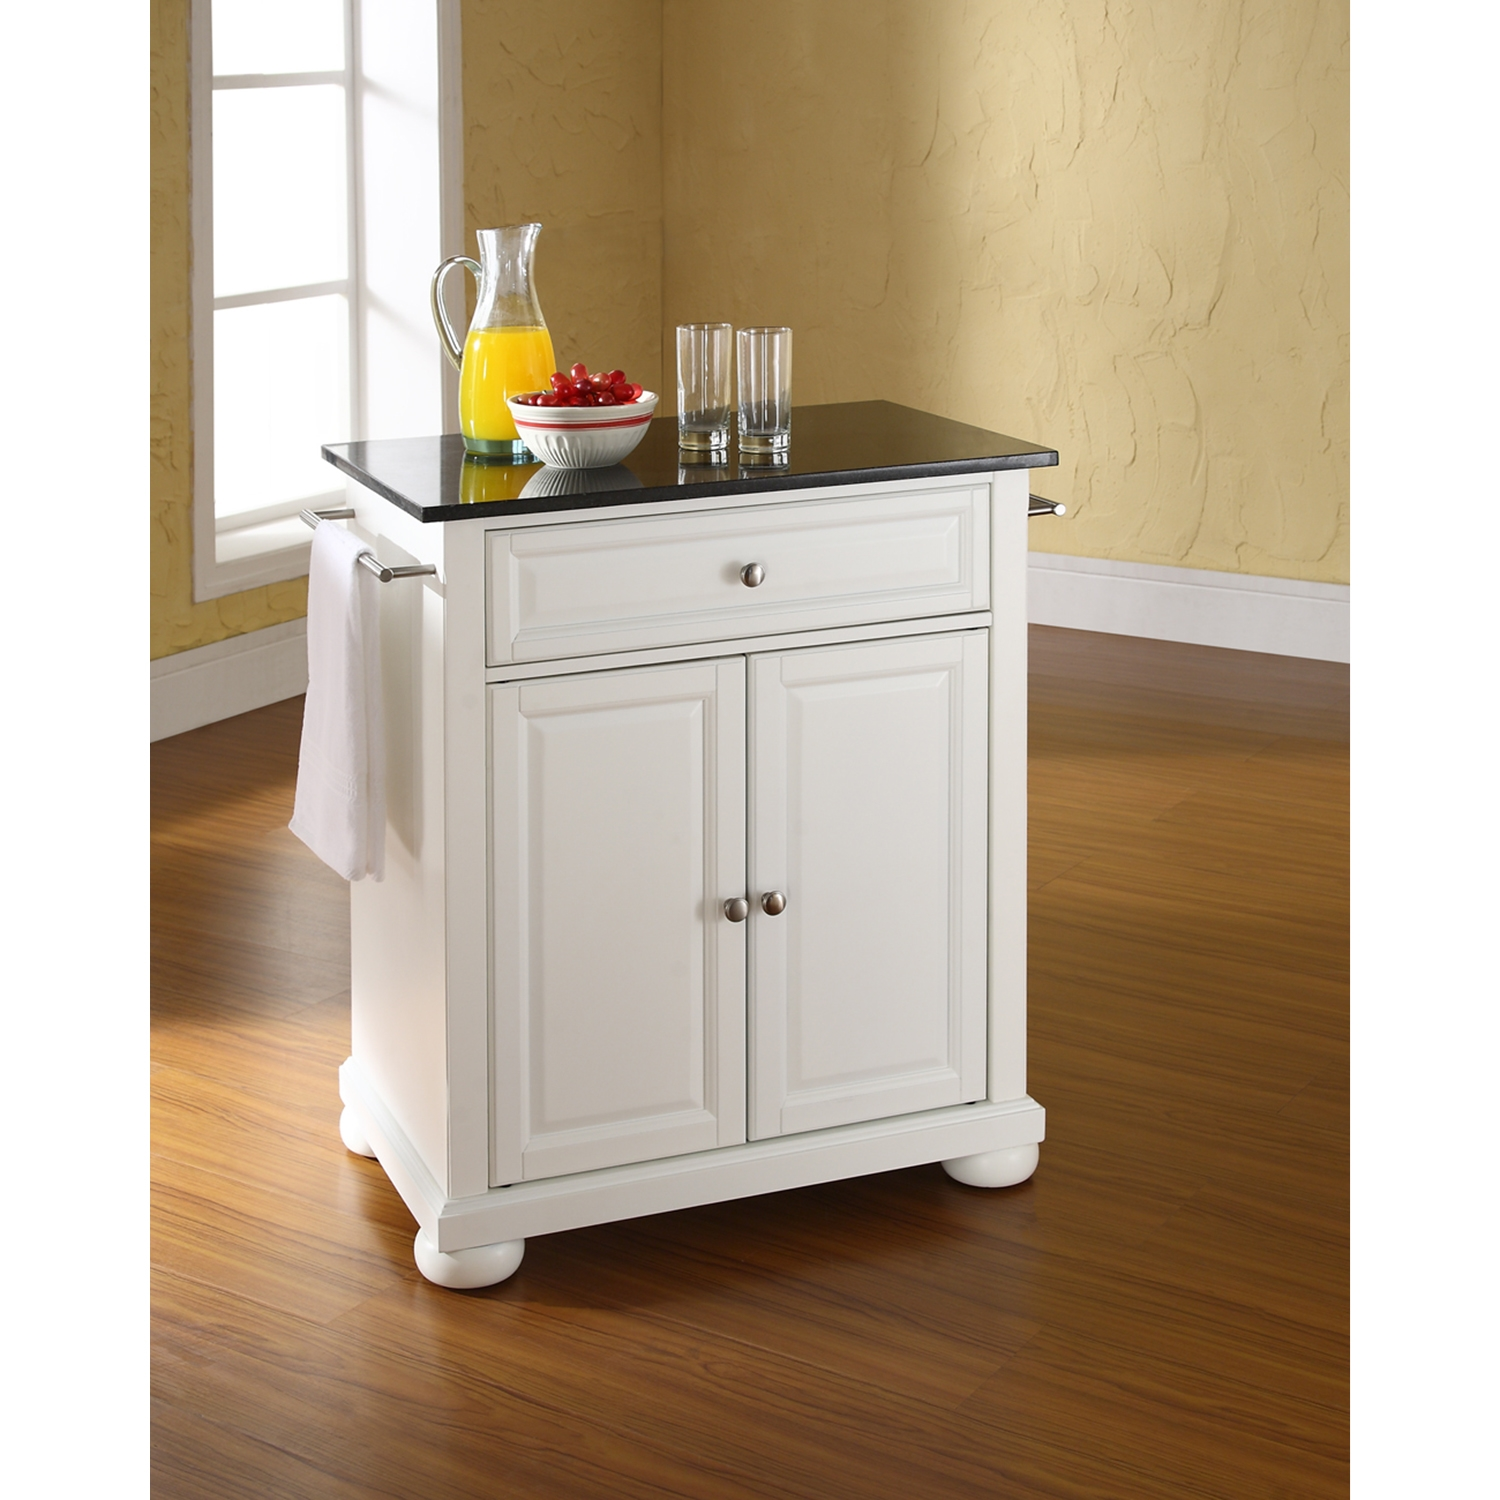 Alexandria Kitchen Island - Portable, Black Granite Top, White - CROS-KF30024AWH